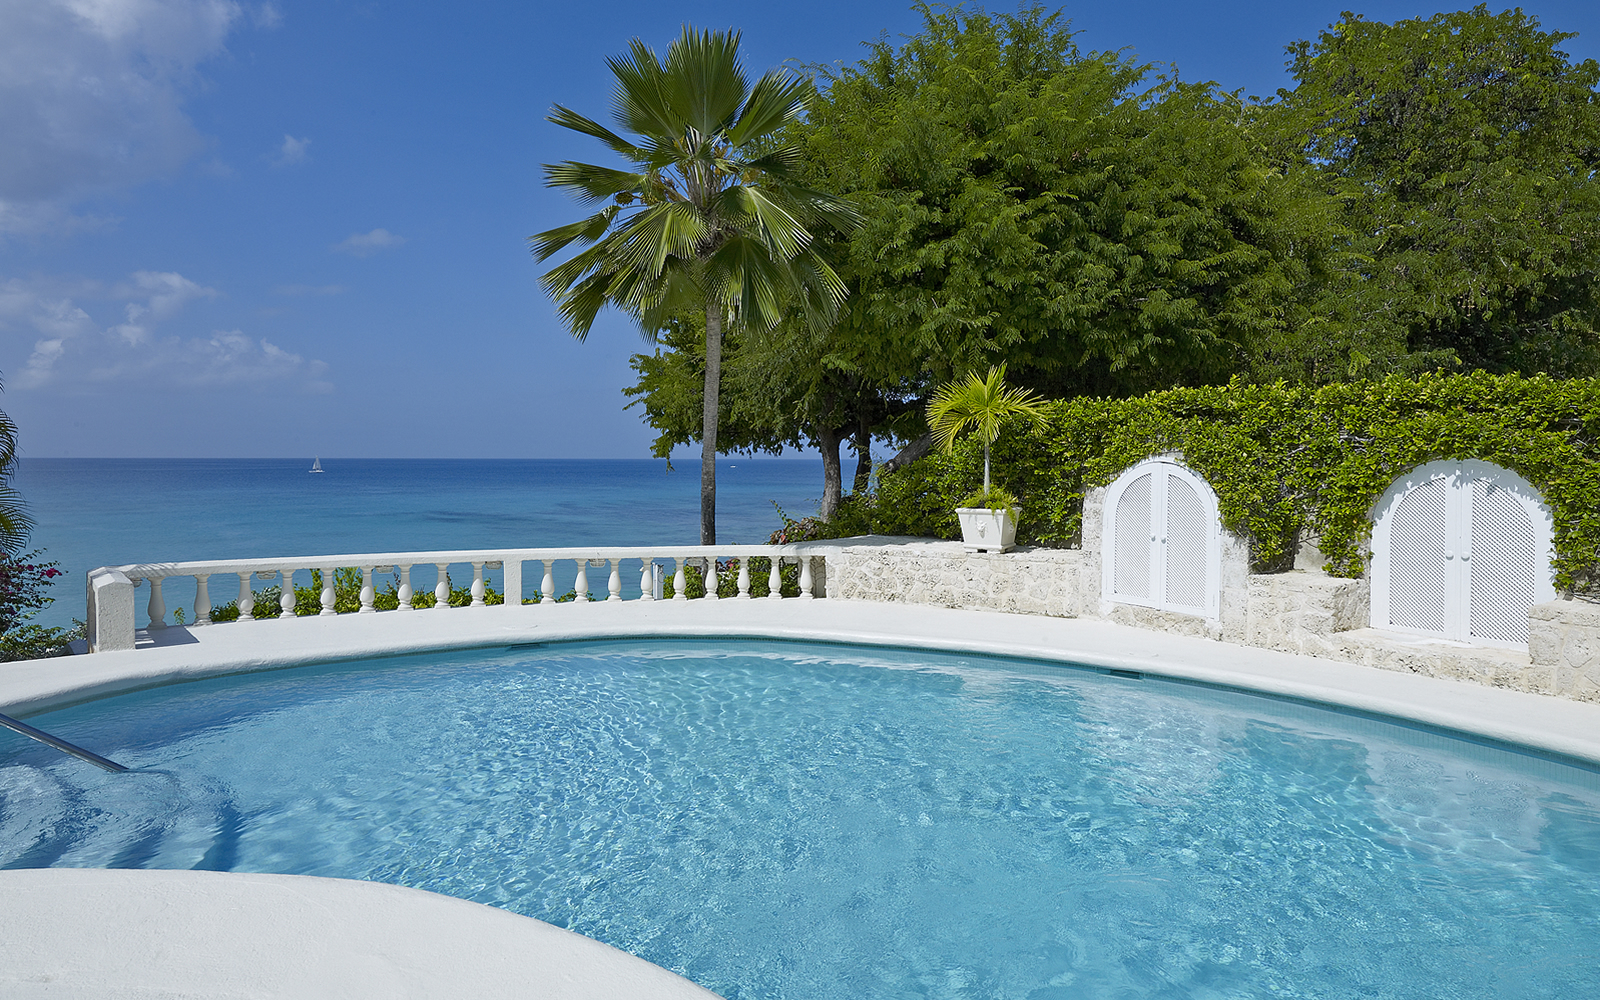 Beachfront Villas in Barbados | Fleewinter Tailor-Made Holidays